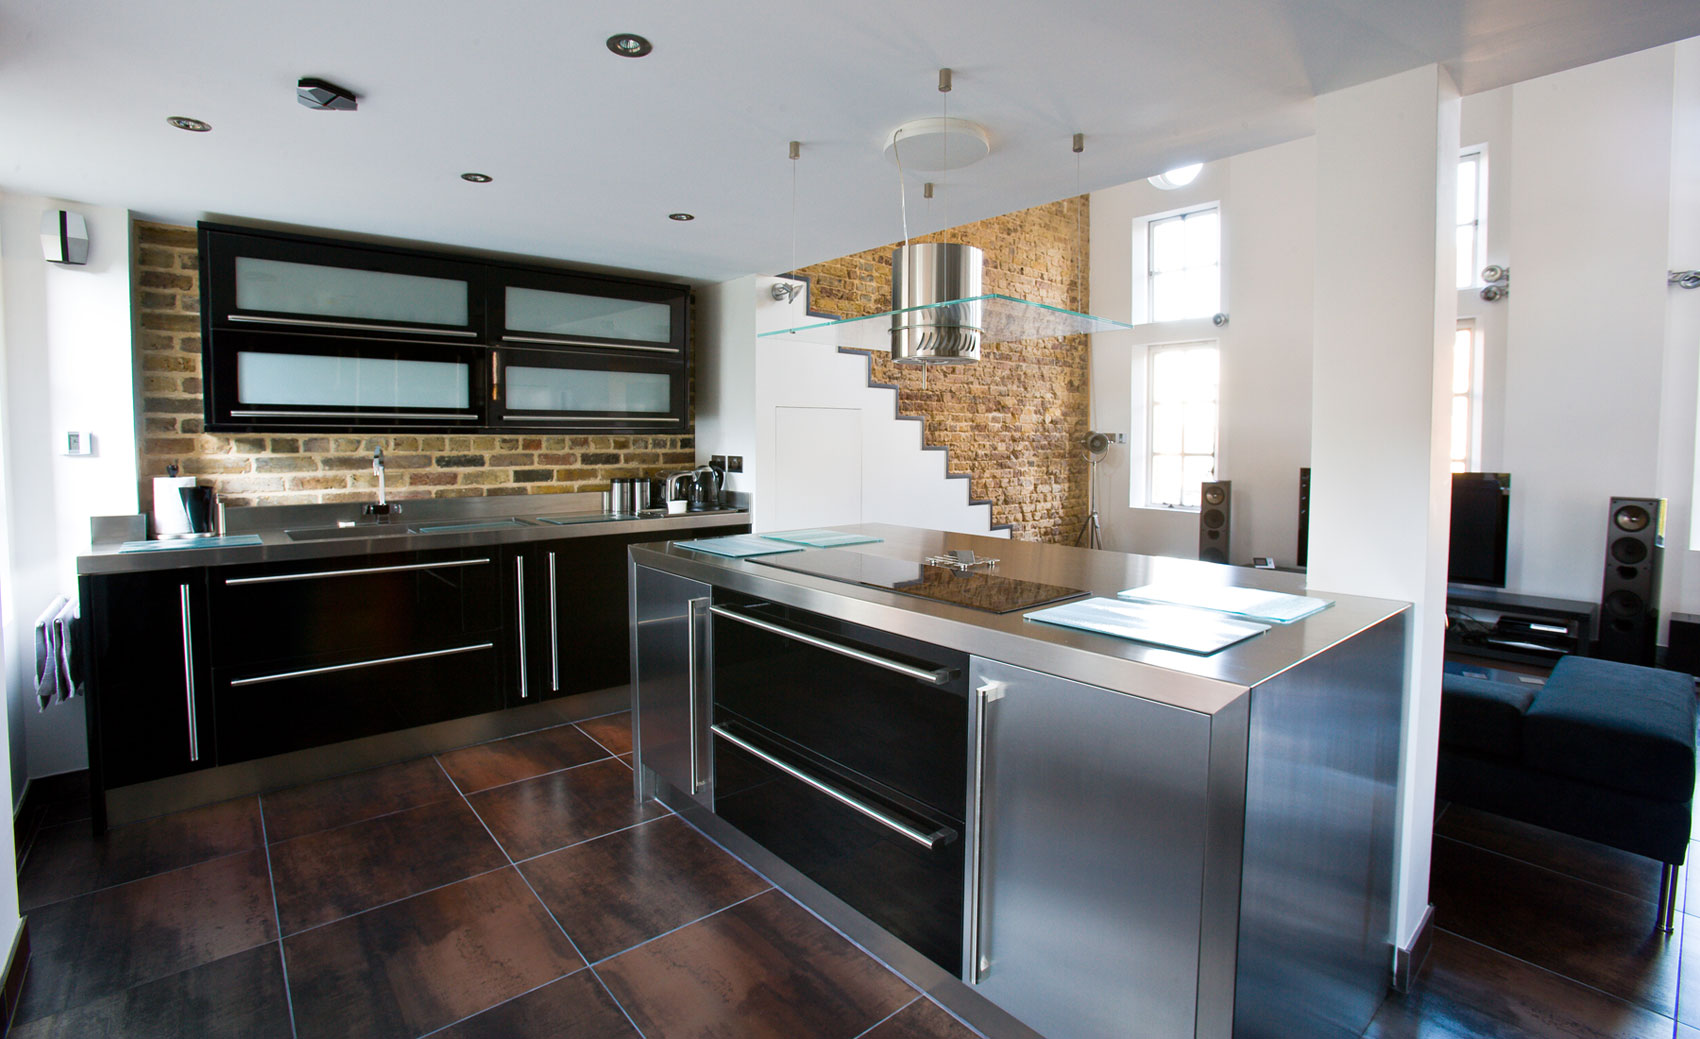 Stainless Steel Kitchens Stainless Steel Kitchen Cabinet Worktops & Splash Backs Uk